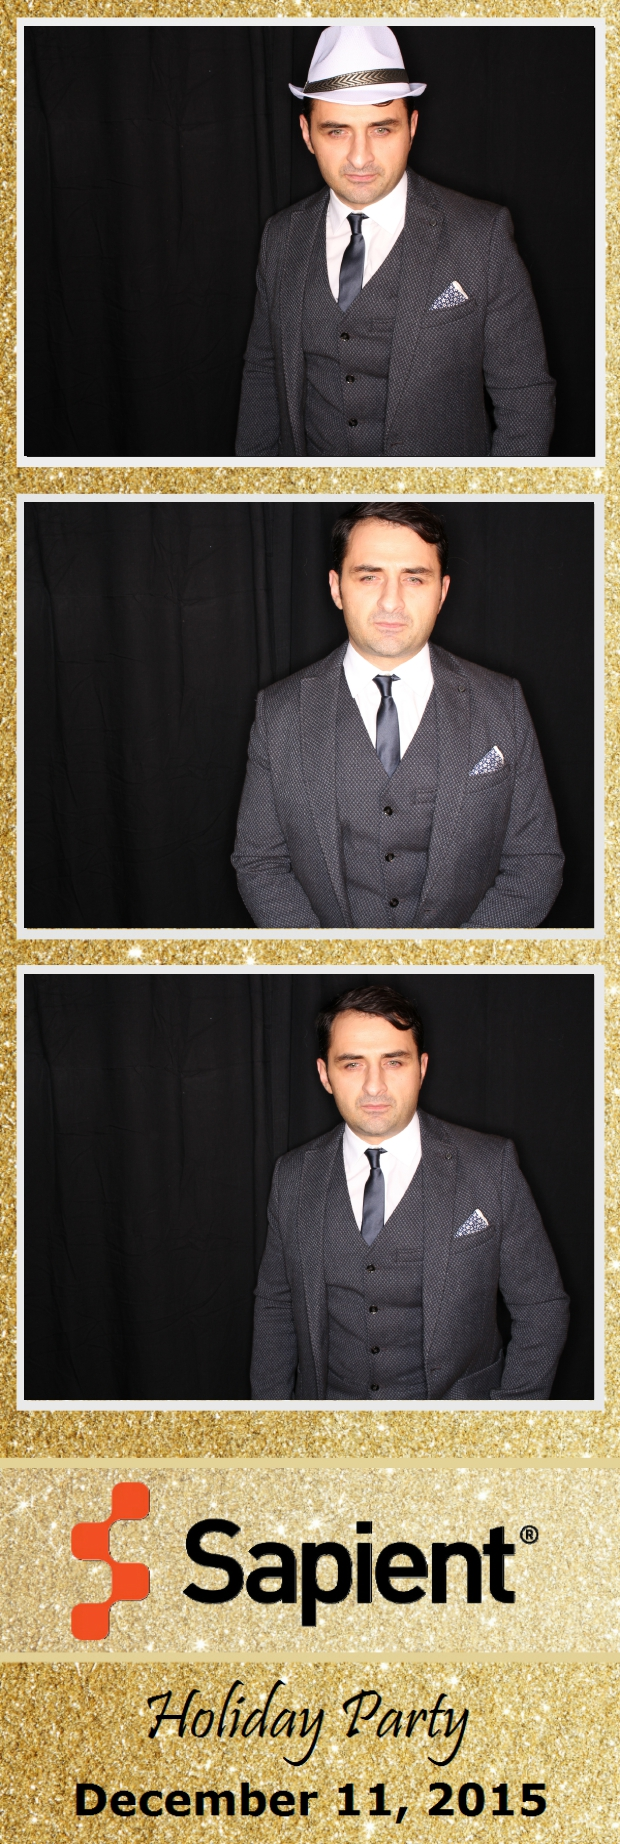 Guest House Events Photo Booth Sapient Holiday Party (4).jpg